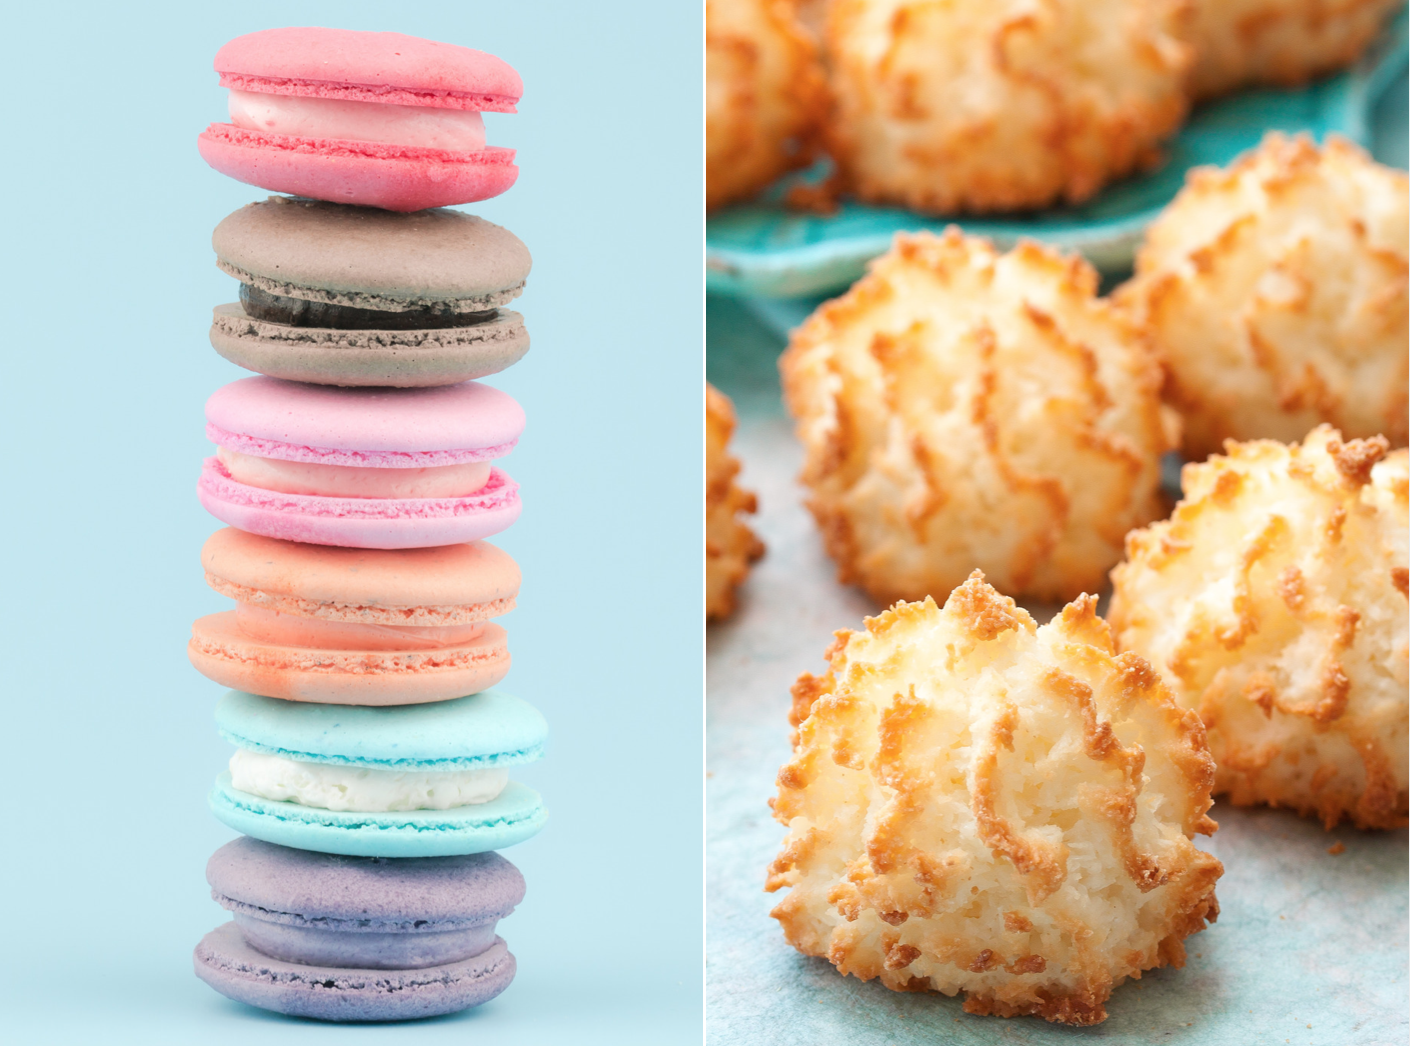 colorful French macarons and coconut macaroons